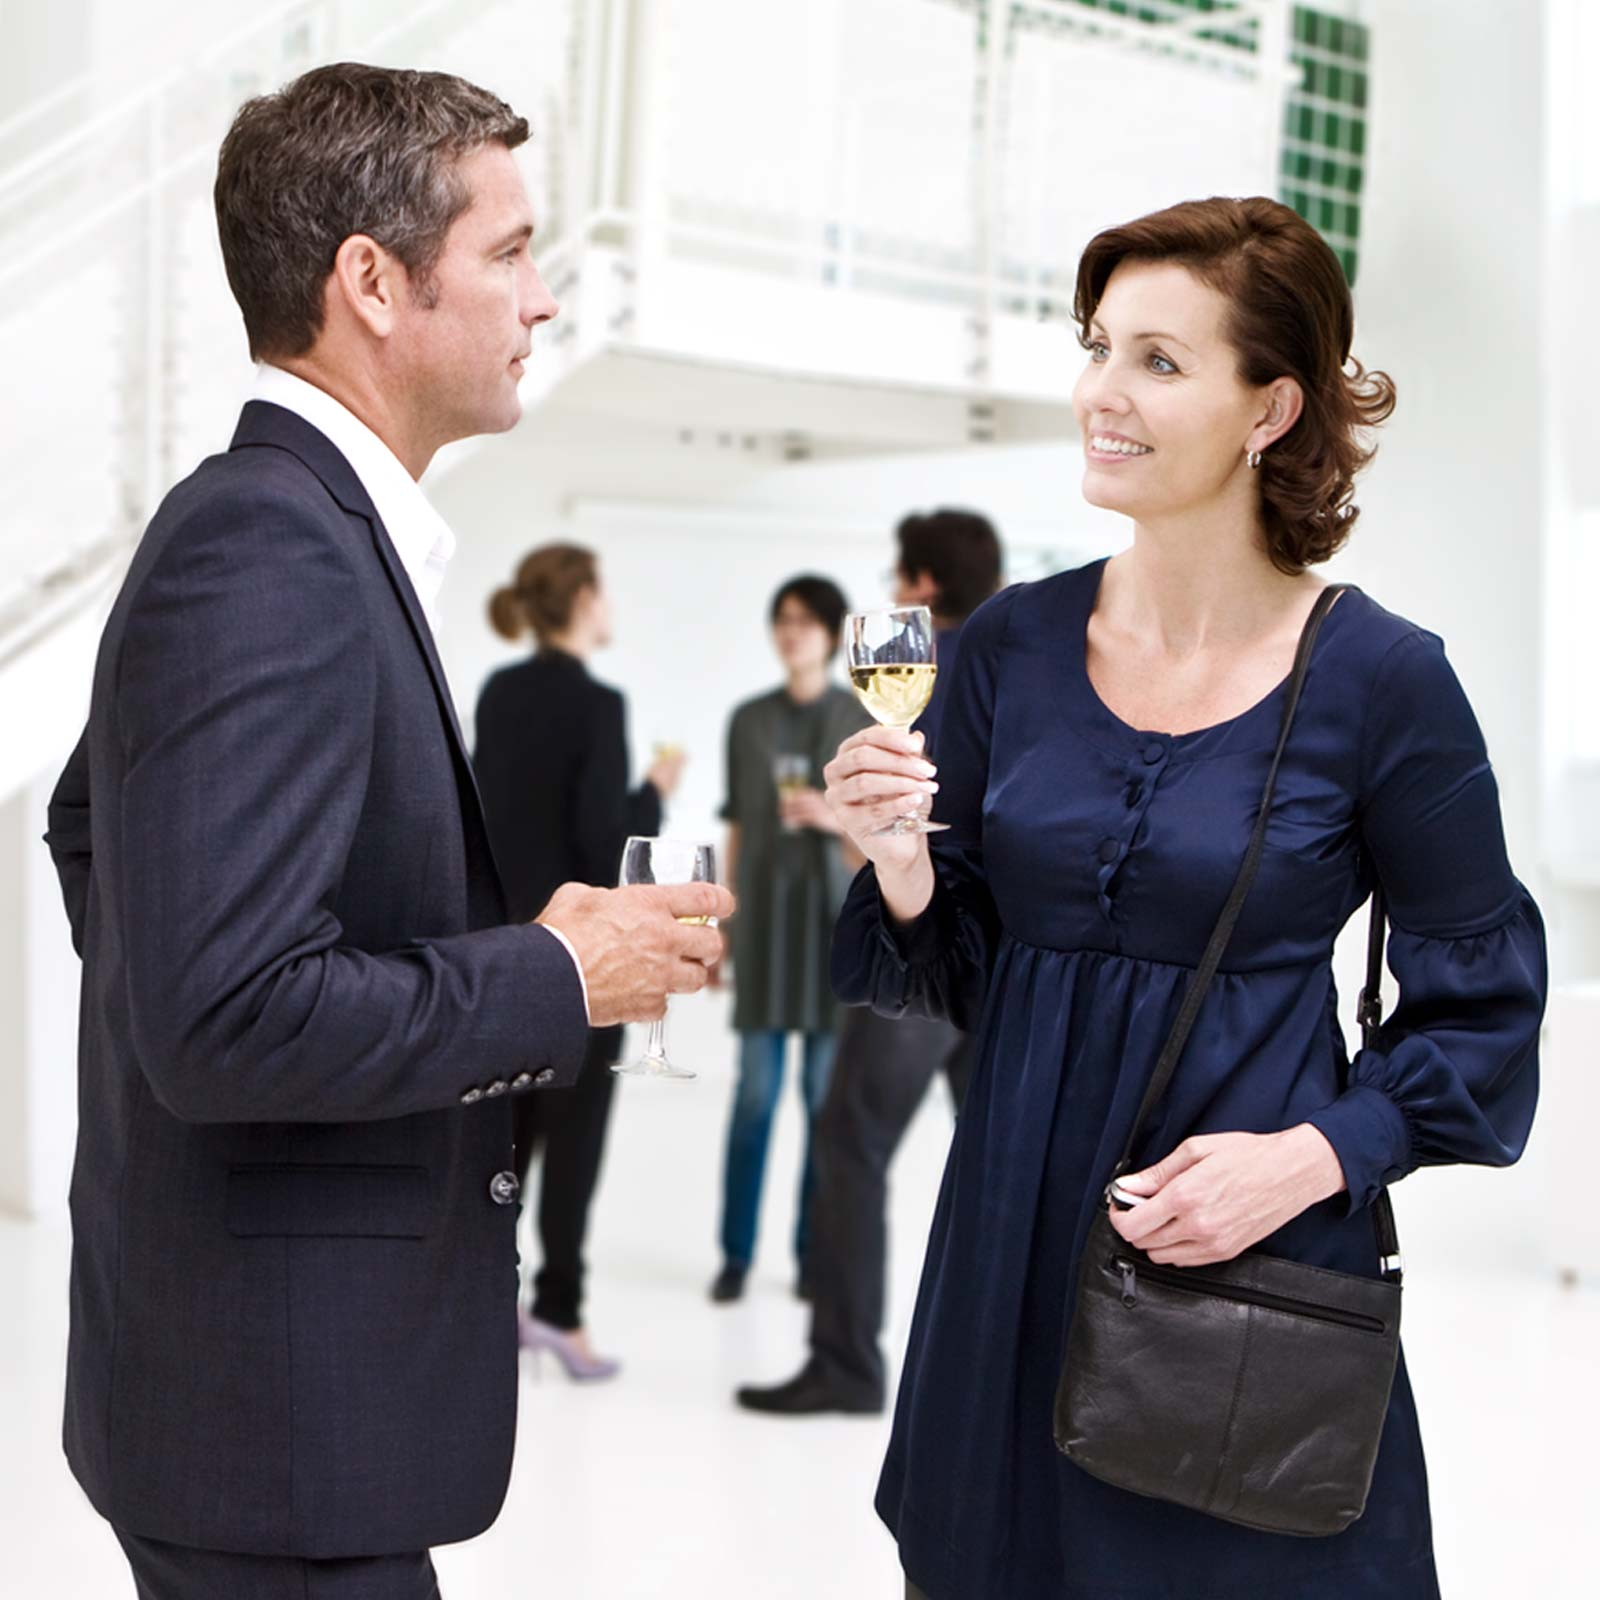 rc-dex-woman-talking-to-man-reception